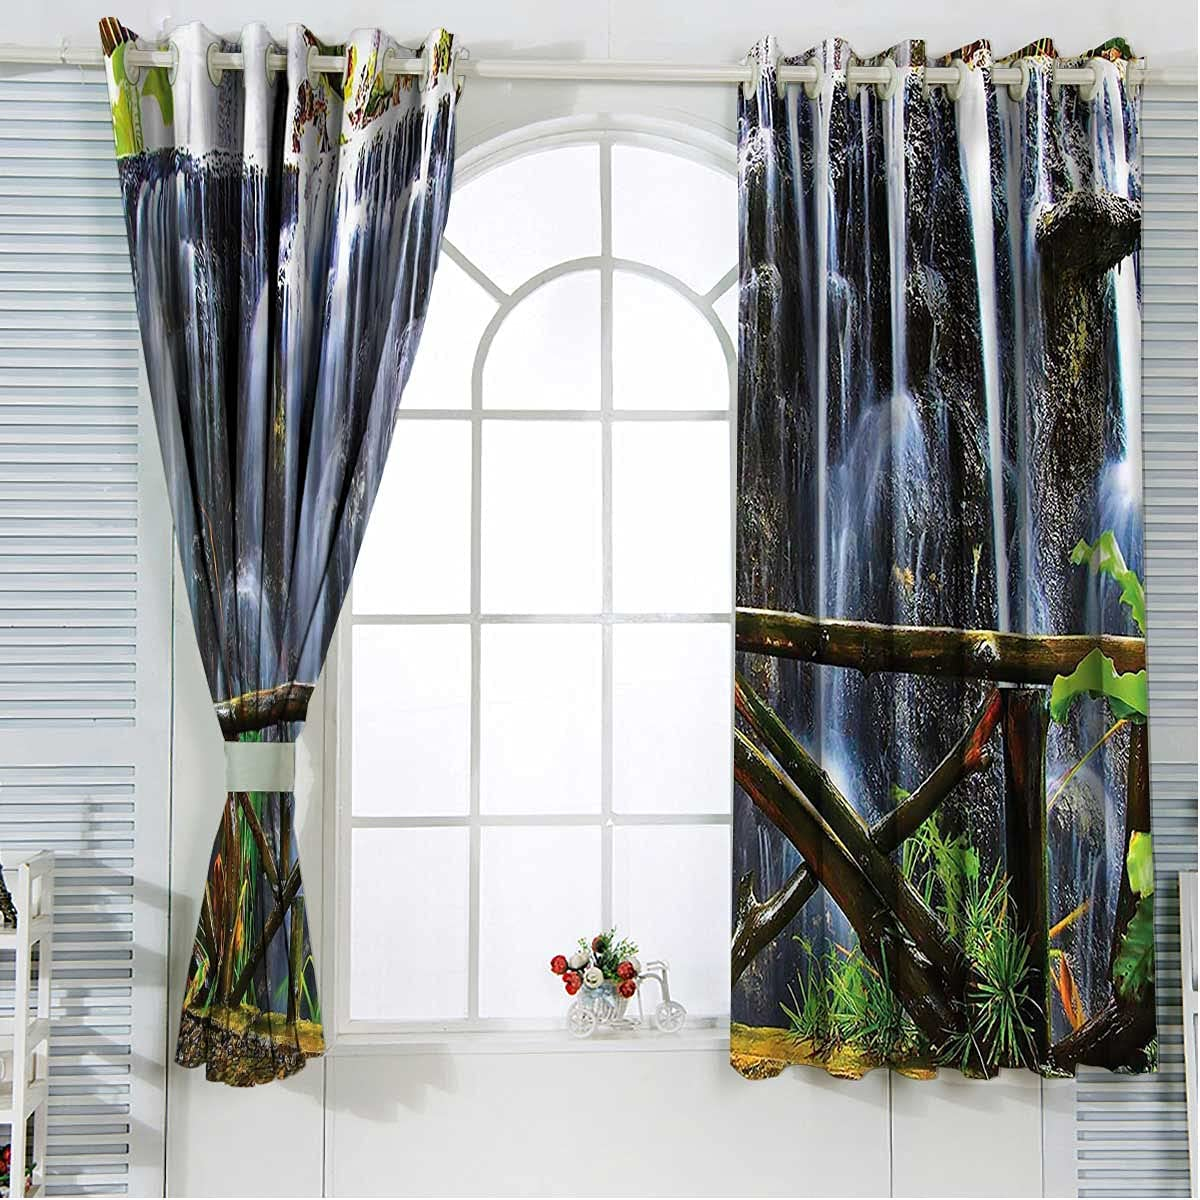 Waterfall Bargain sale Noise Cancelling Curtains 63 Inch Park Length Tropical Dealing full price reduction